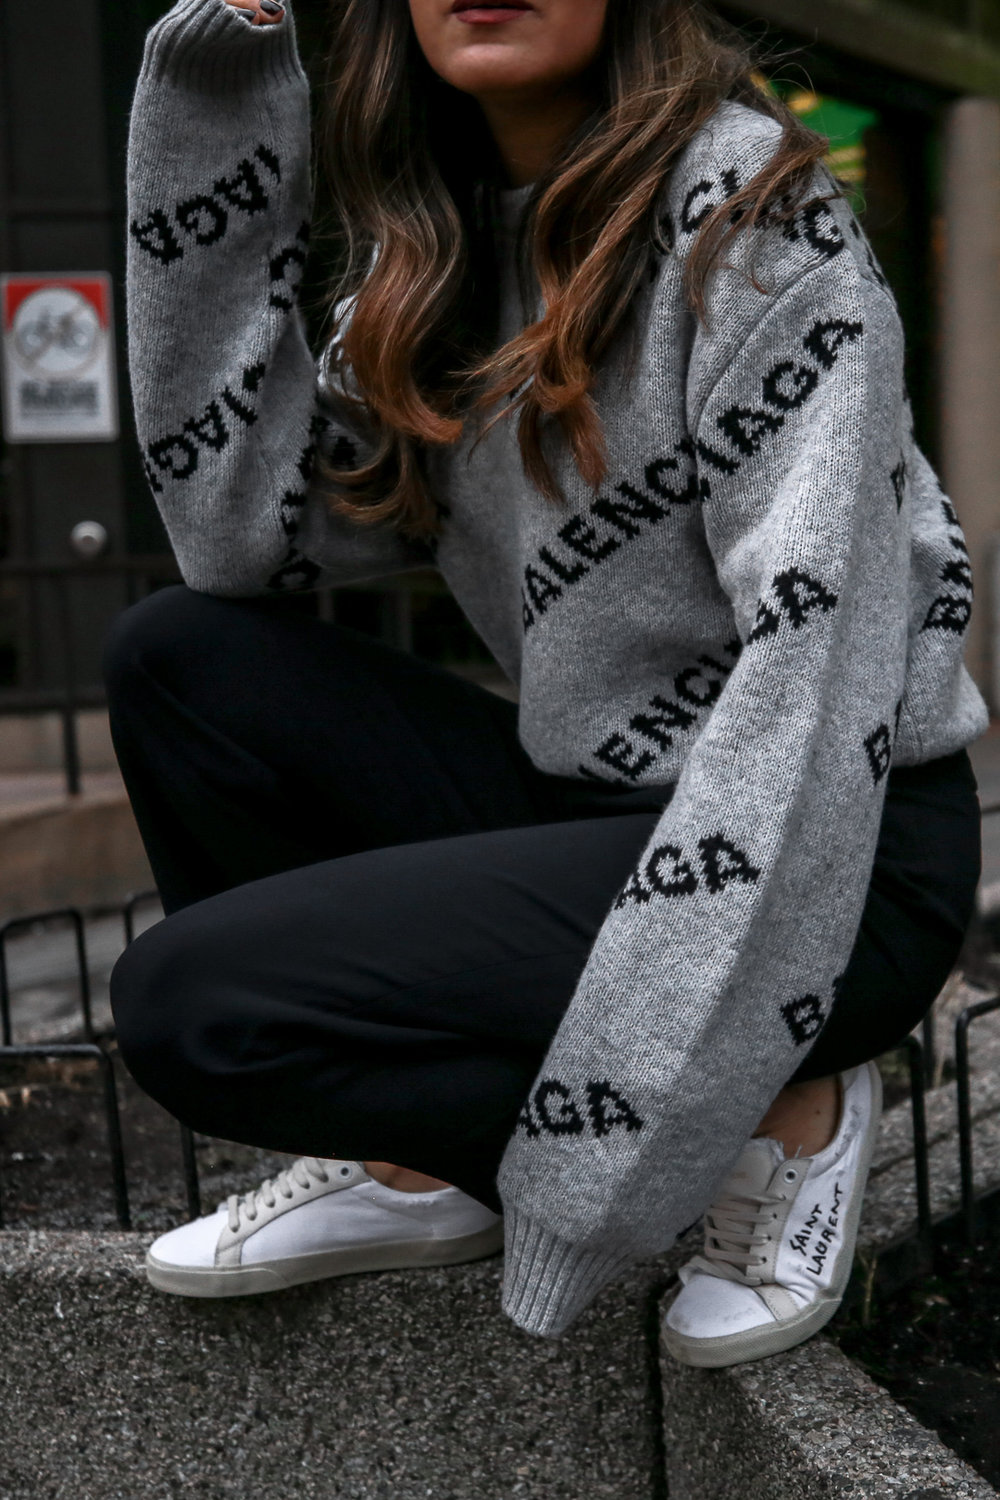 Nathalie Martin wearing Balenciaga cropped logo sweater, Aritzia black Jallade pant, Saint Laurent white canvas court sneakers, Aritzia navy pinstripe Stedman coat, neon green beanie, Bonlook Way sunglasses, street style, woahstyle.com_3923.jpg